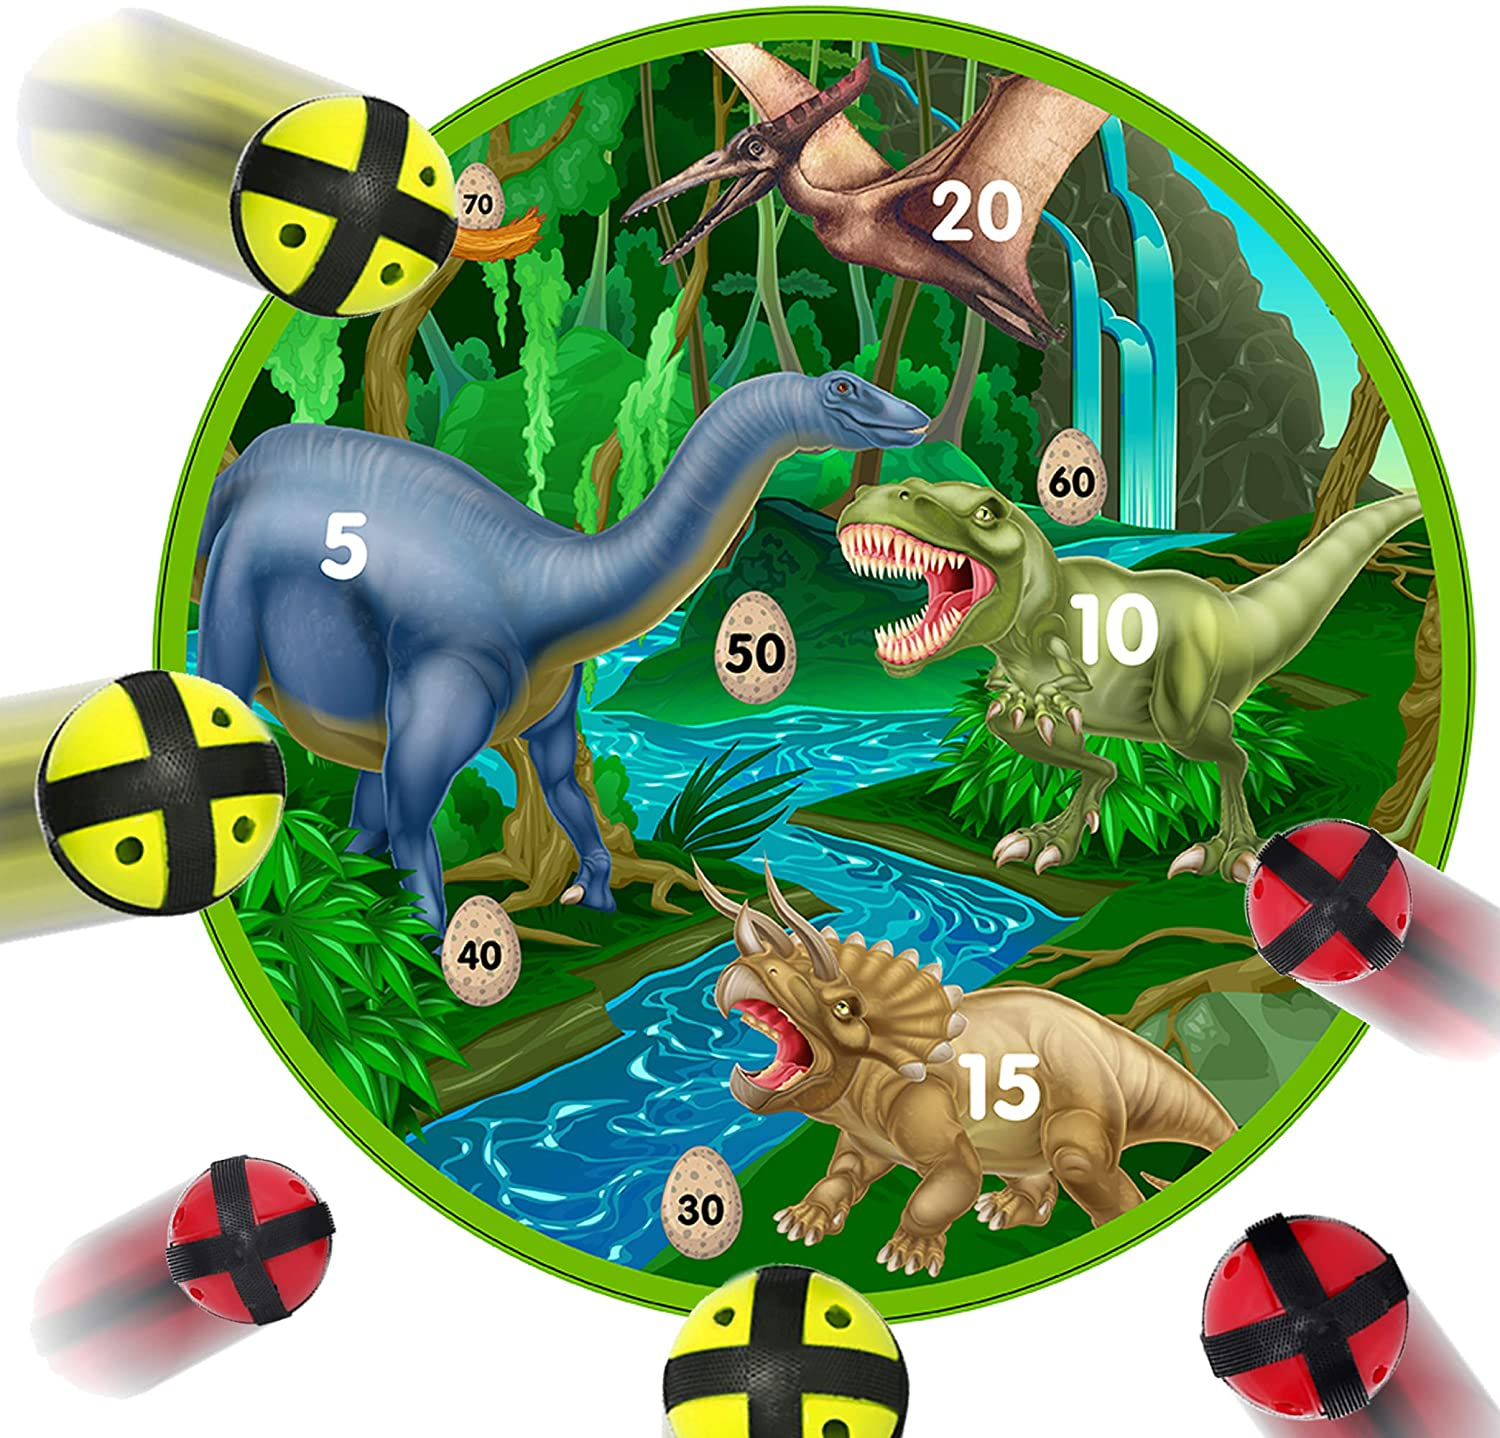 Fun Dinosaur Dart Board Game with 6 Balls Using Hook-and-Loop Fasteners | Learn Numbers, Math and Dinosaurs | Interactive Game and Safe for Kids